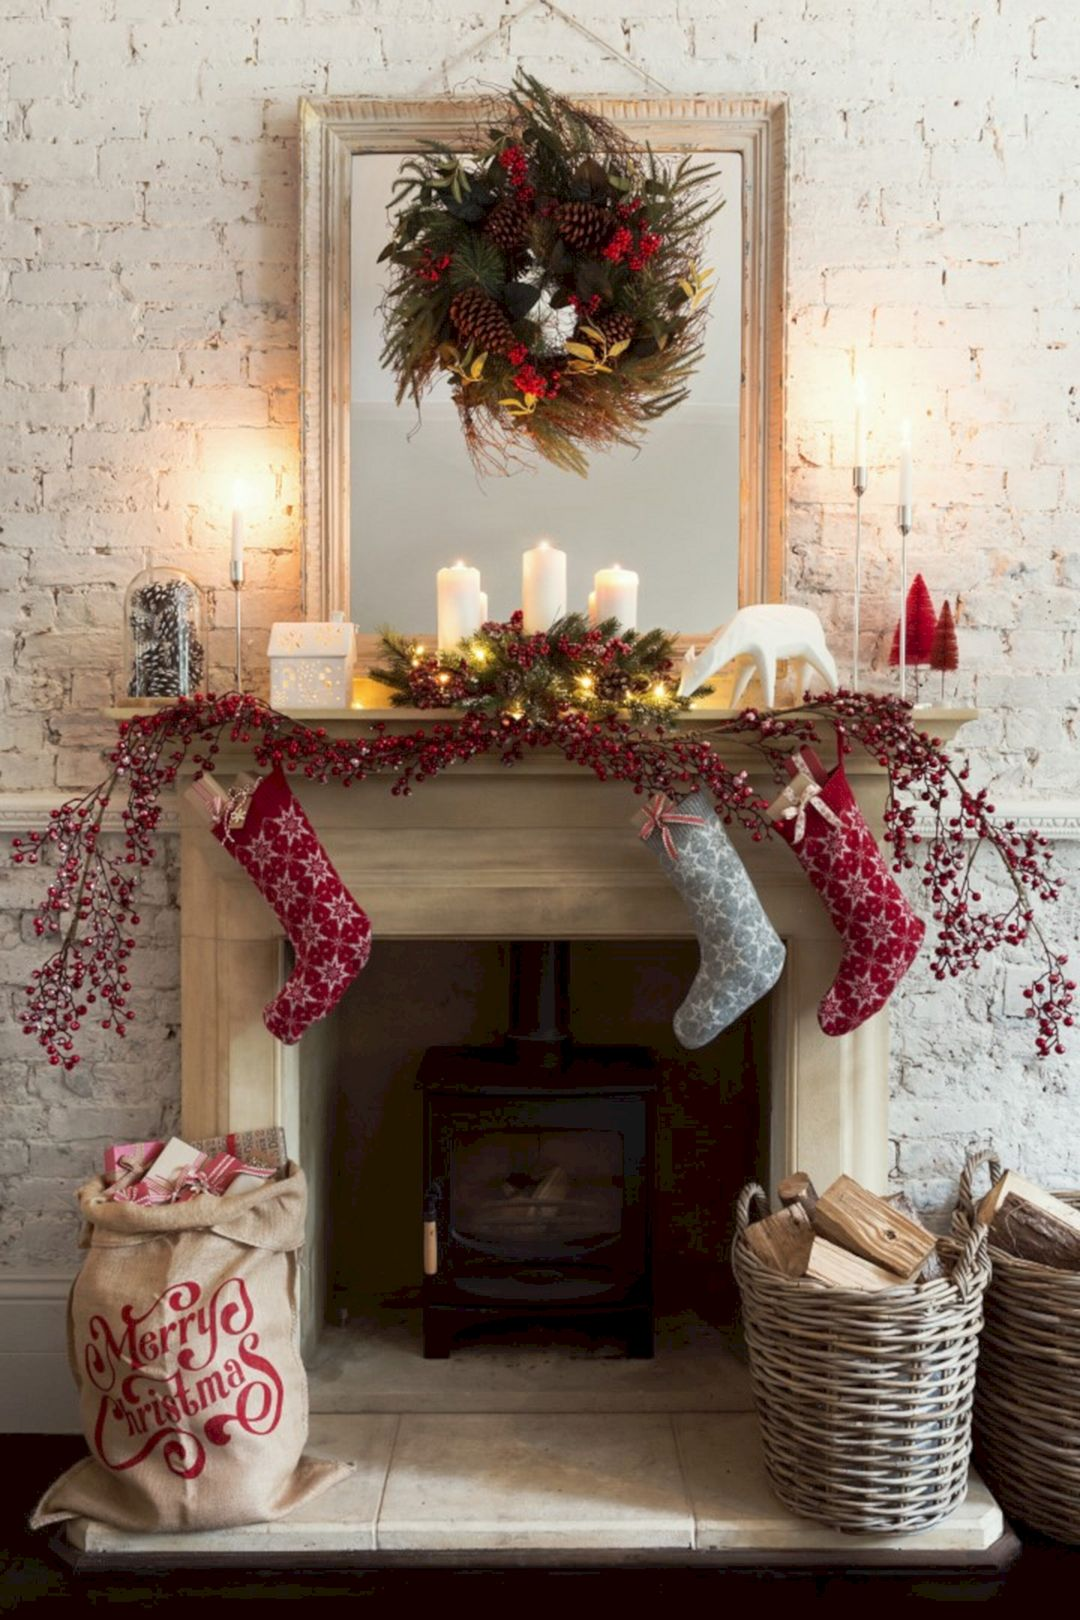 Living Room Christmas Decor Ideas And Tips For Bringing ... on Decor For Room  id=73511